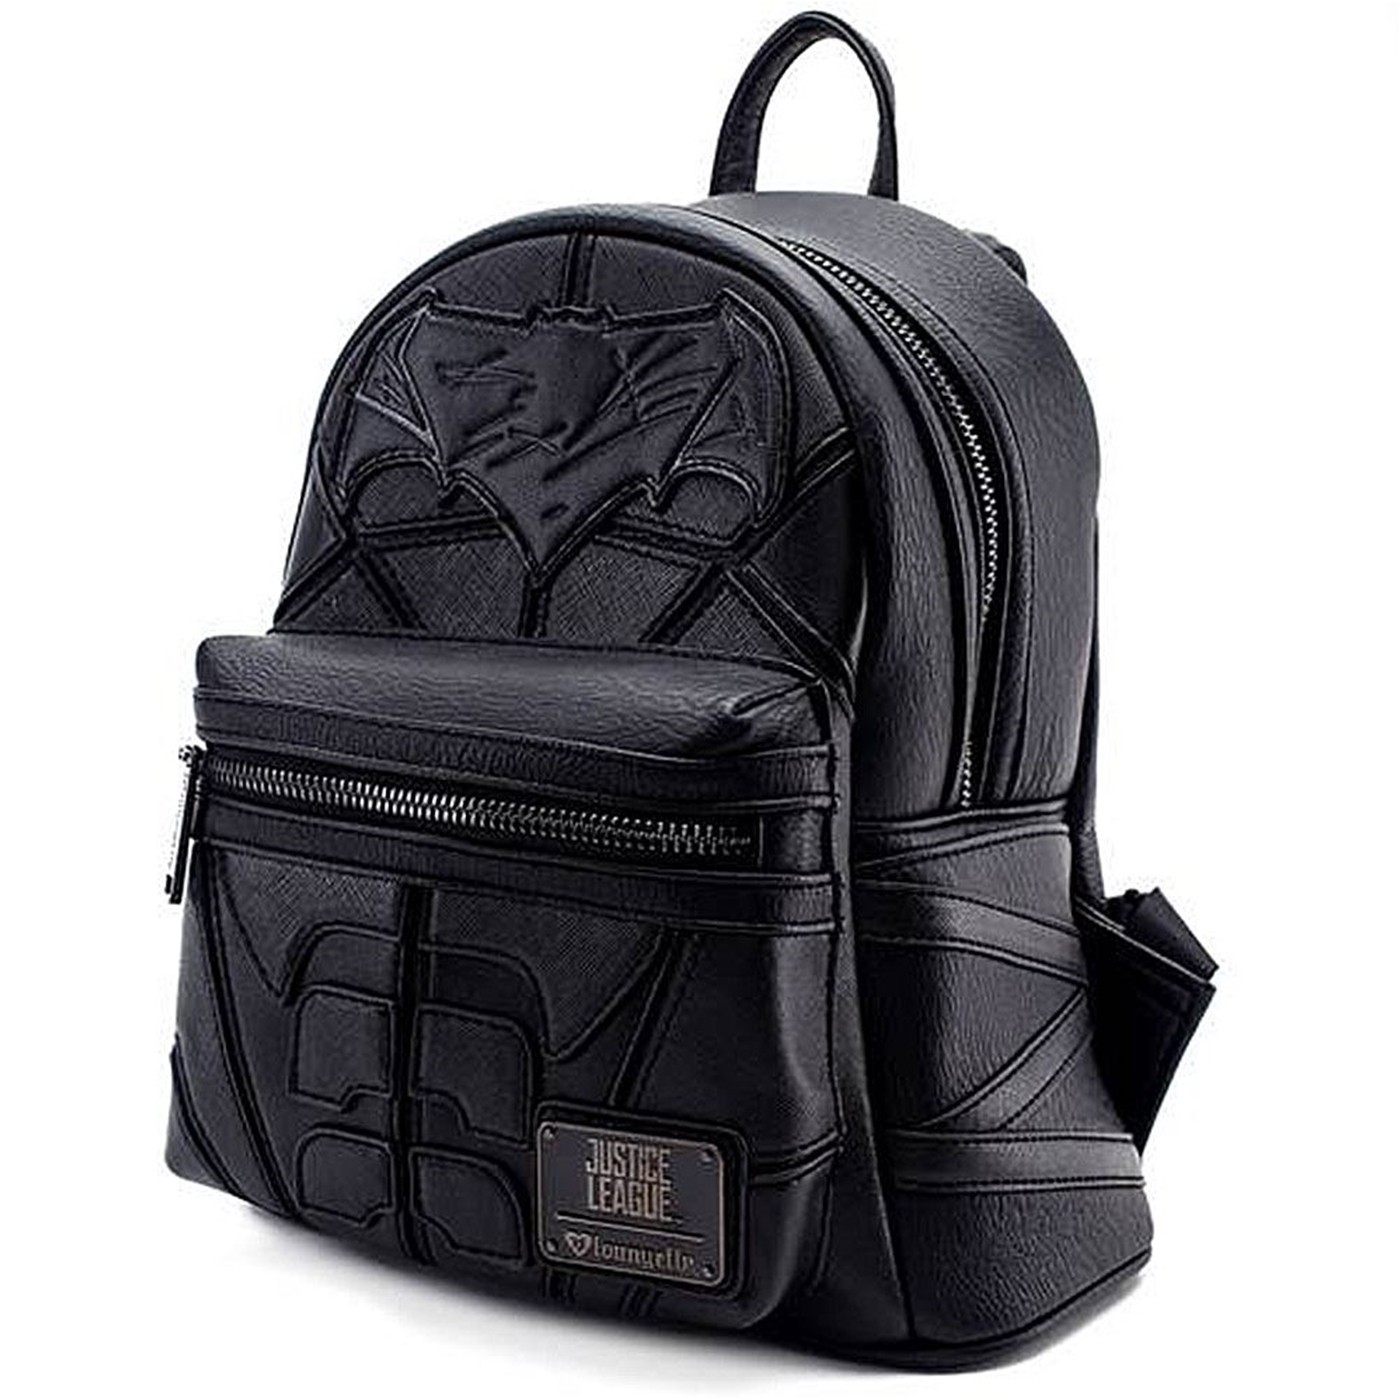 Batman Justice League Armor Mini Backpack